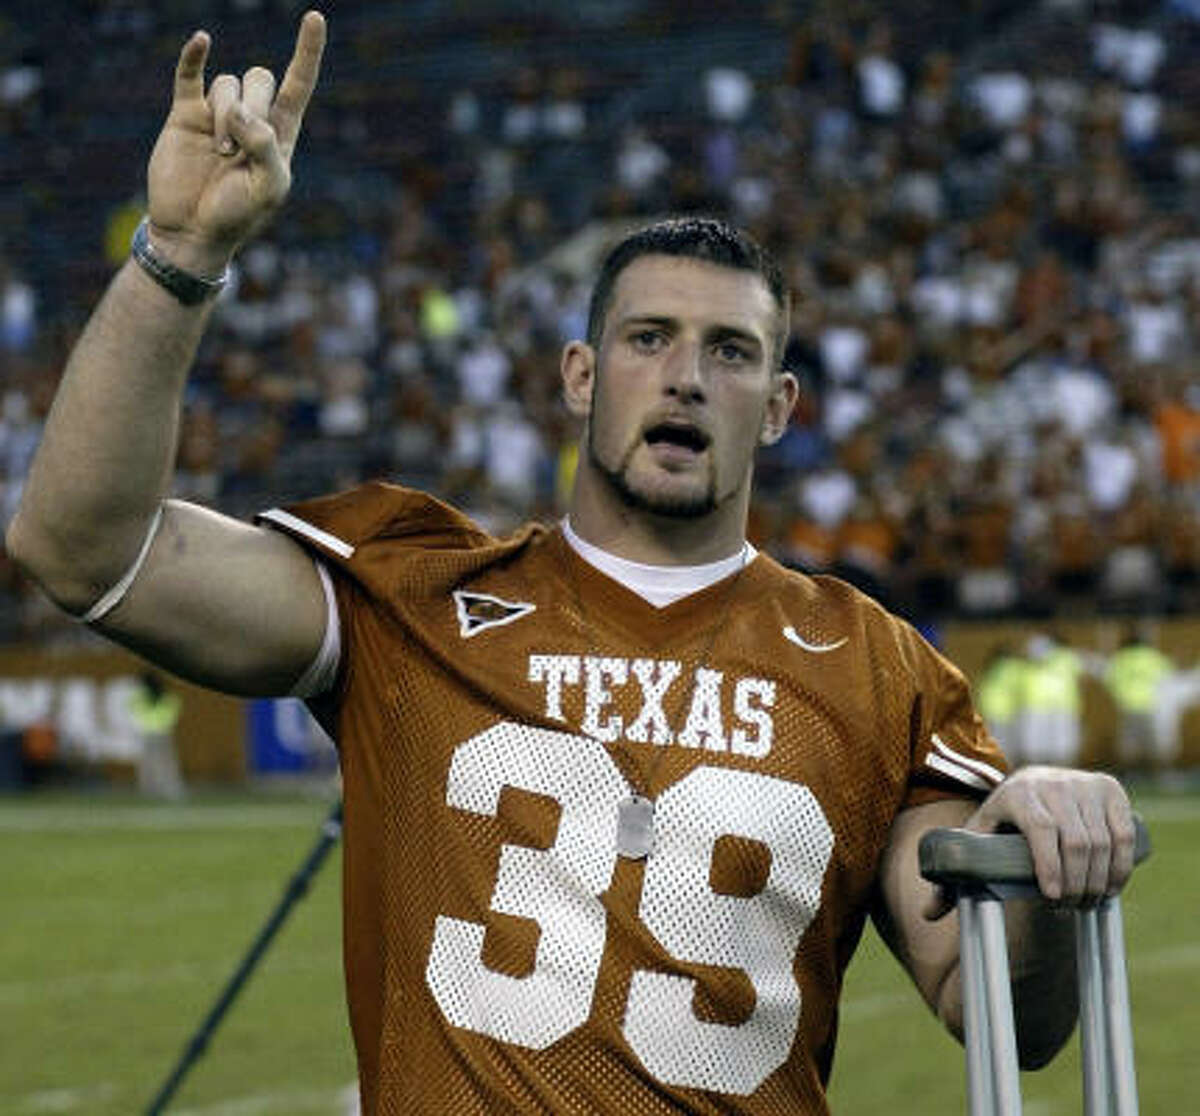 Texas defensive end Brian Robison had to use crutches, but was on the field with the Longhorns after the game.